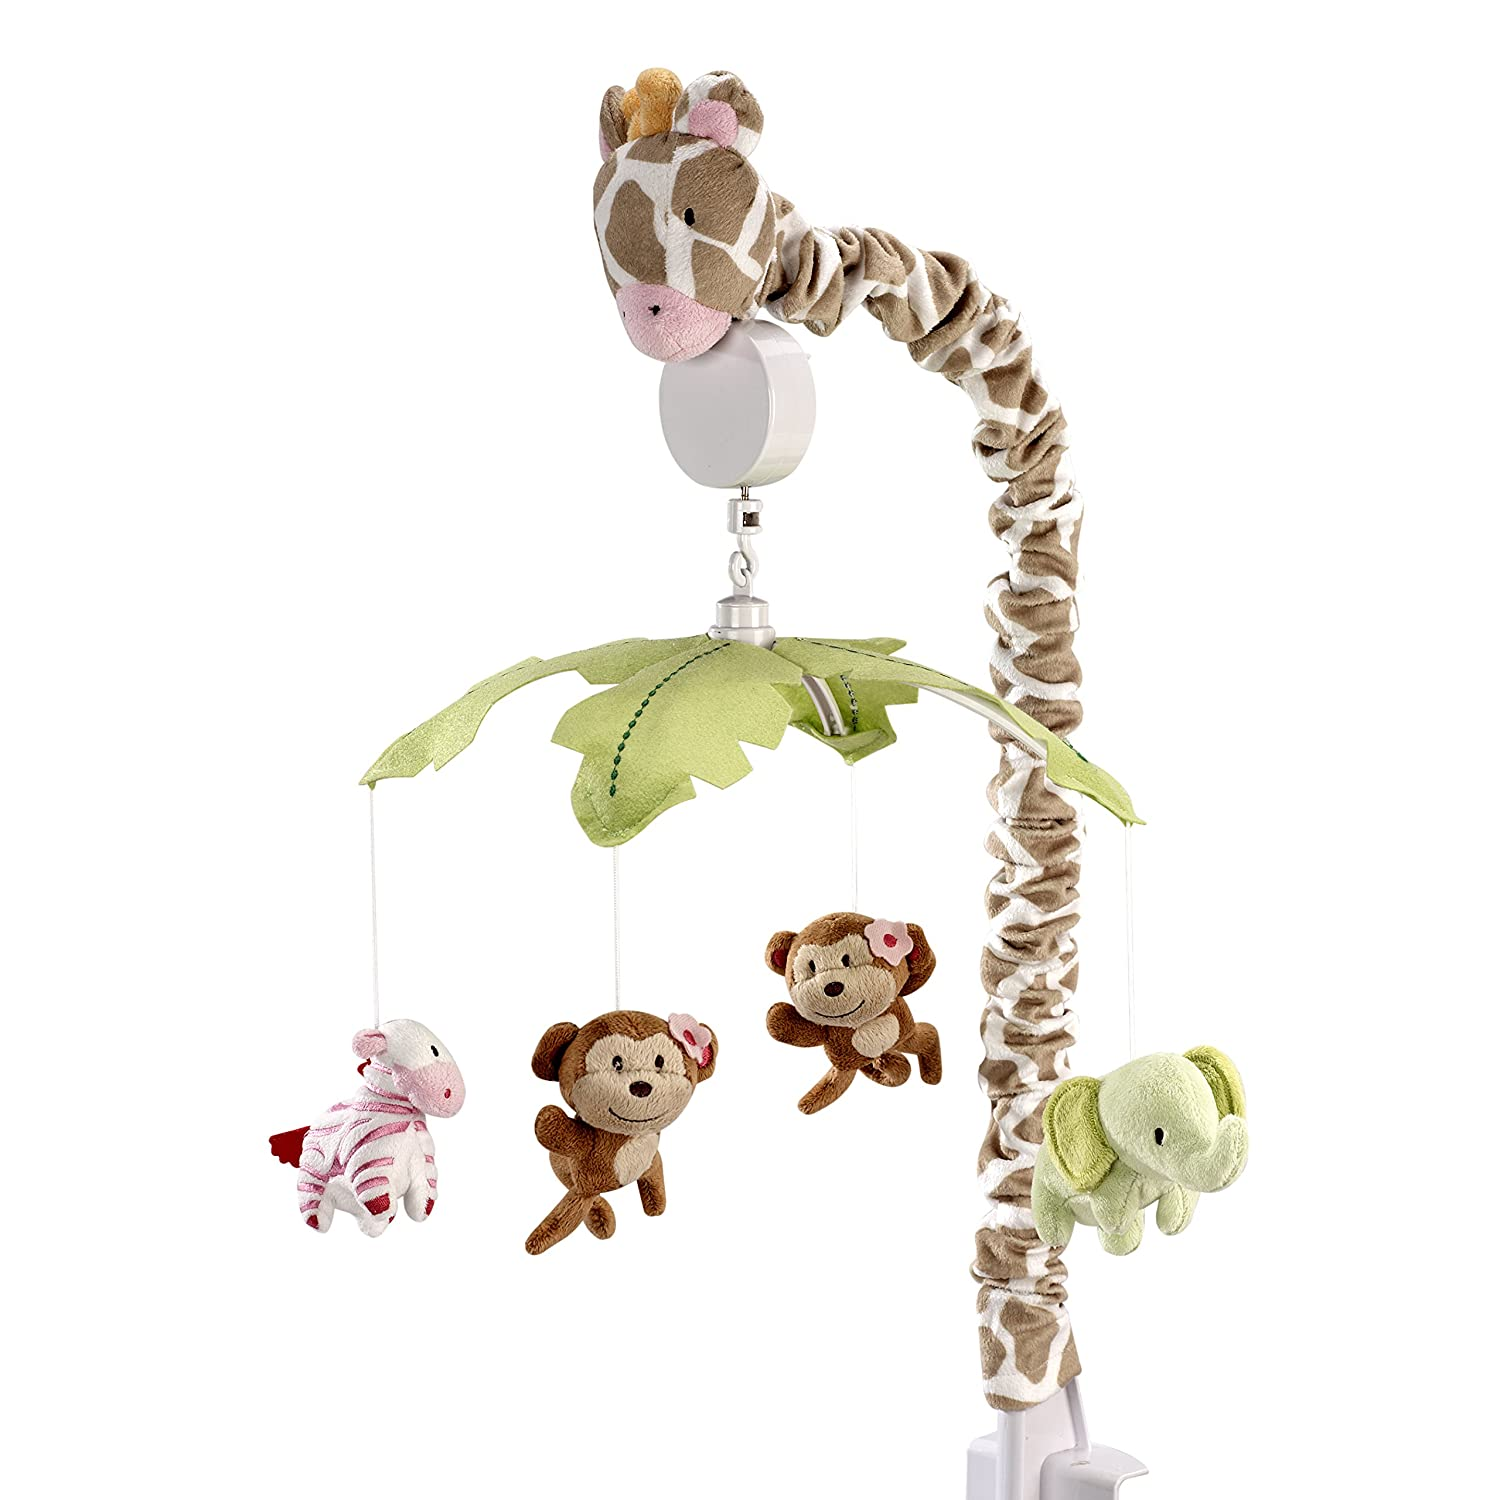 Carter's Jungle Collection Musical Mobile Crown Crafts Infant Products 5042079